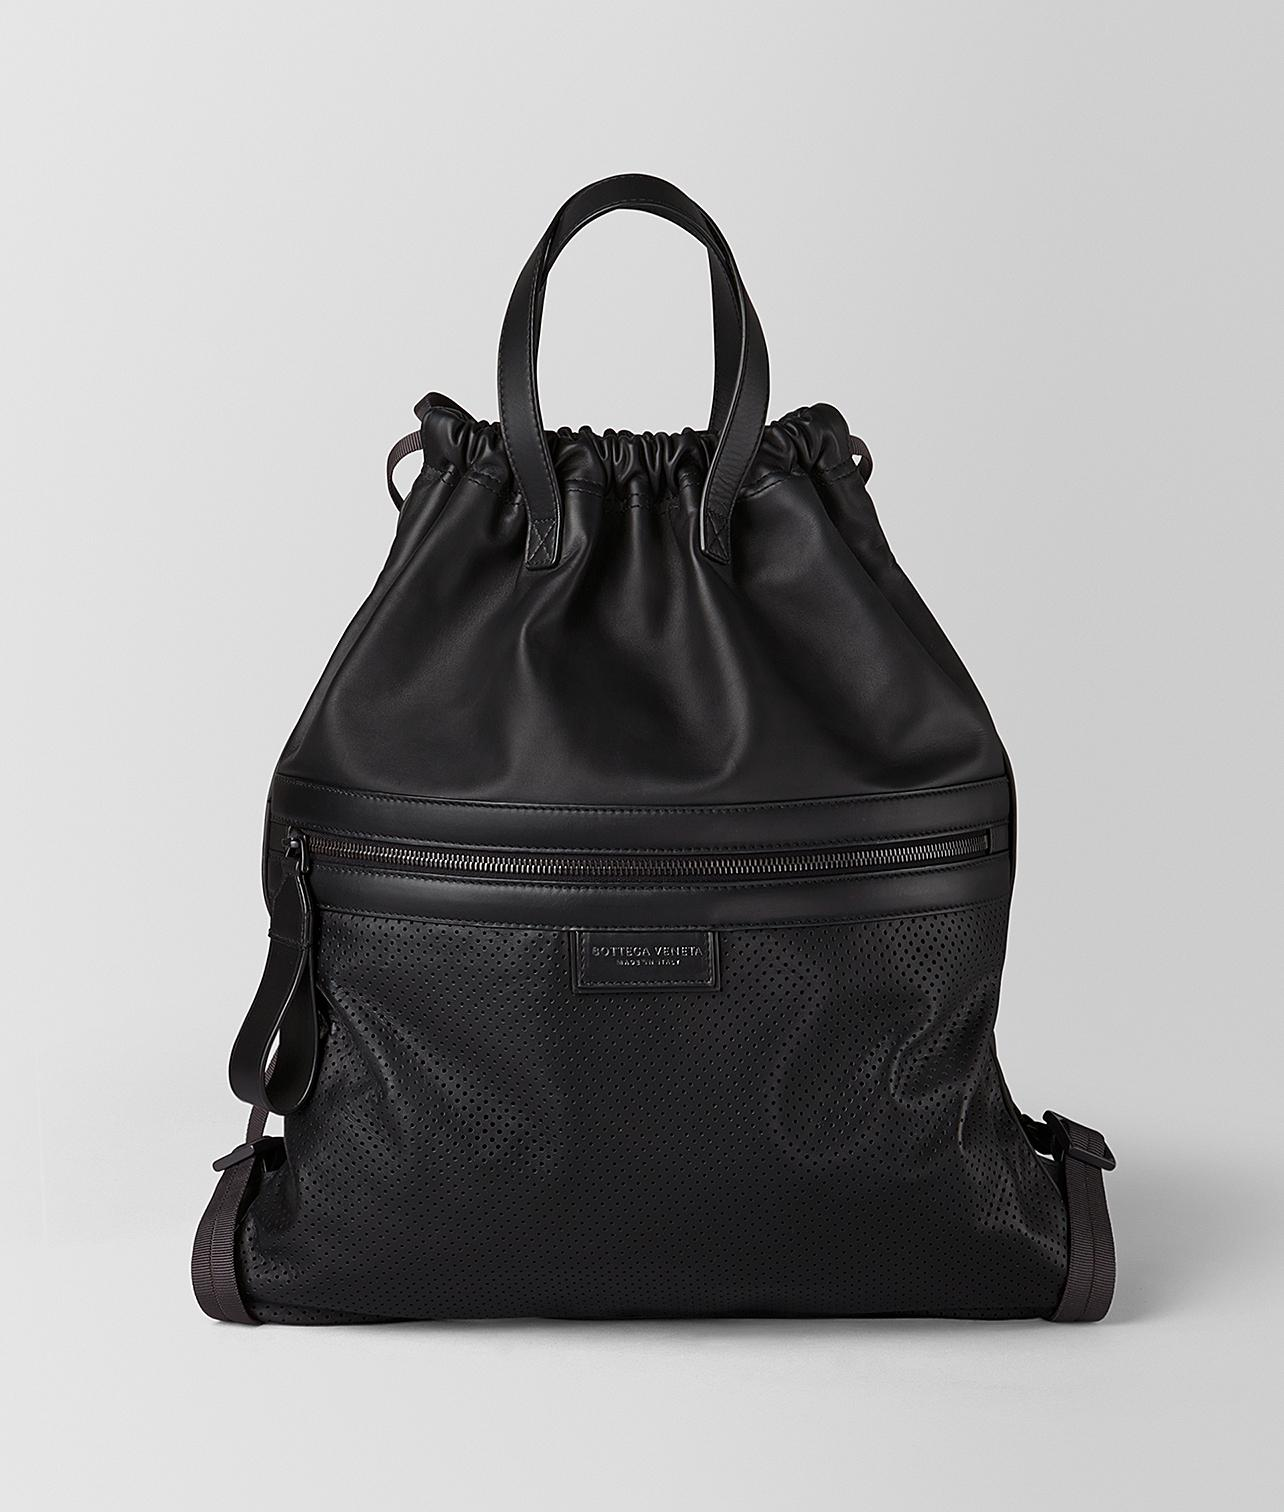 49fd48dec5 Bottega Veneta - Black Backpack In LEGGERO for Men - Lyst. View fullscreen